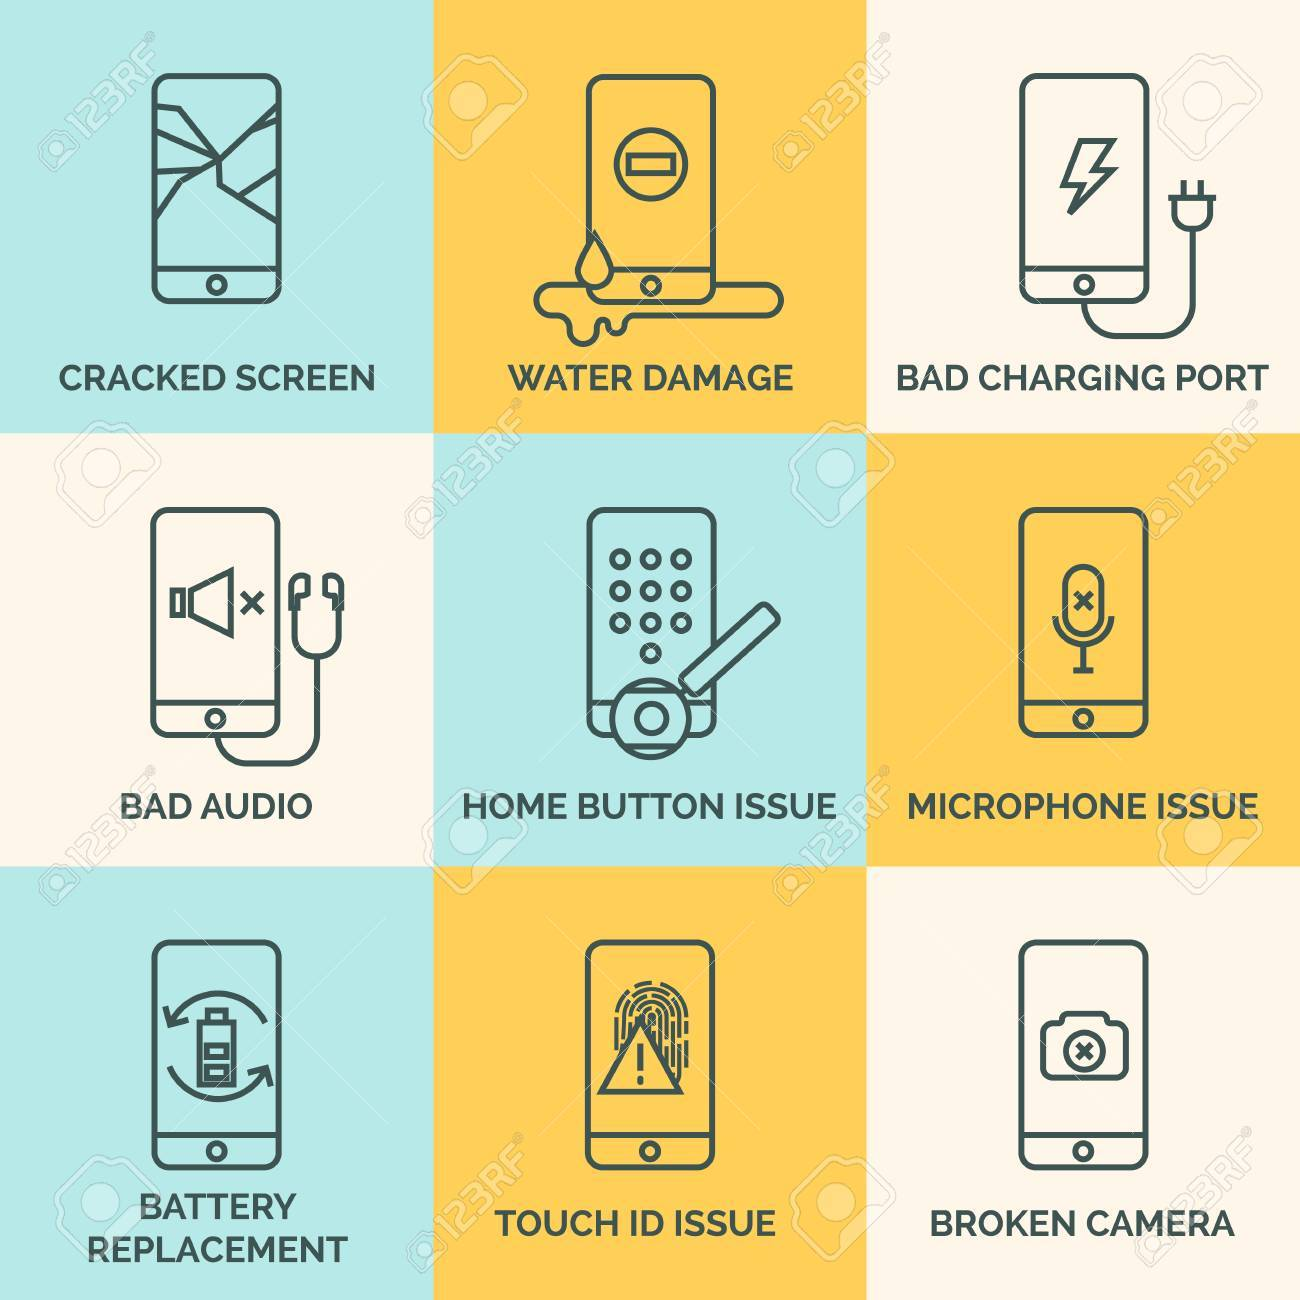 Diagram Of Phone Issues - Illustration Of Wiring Diagram •